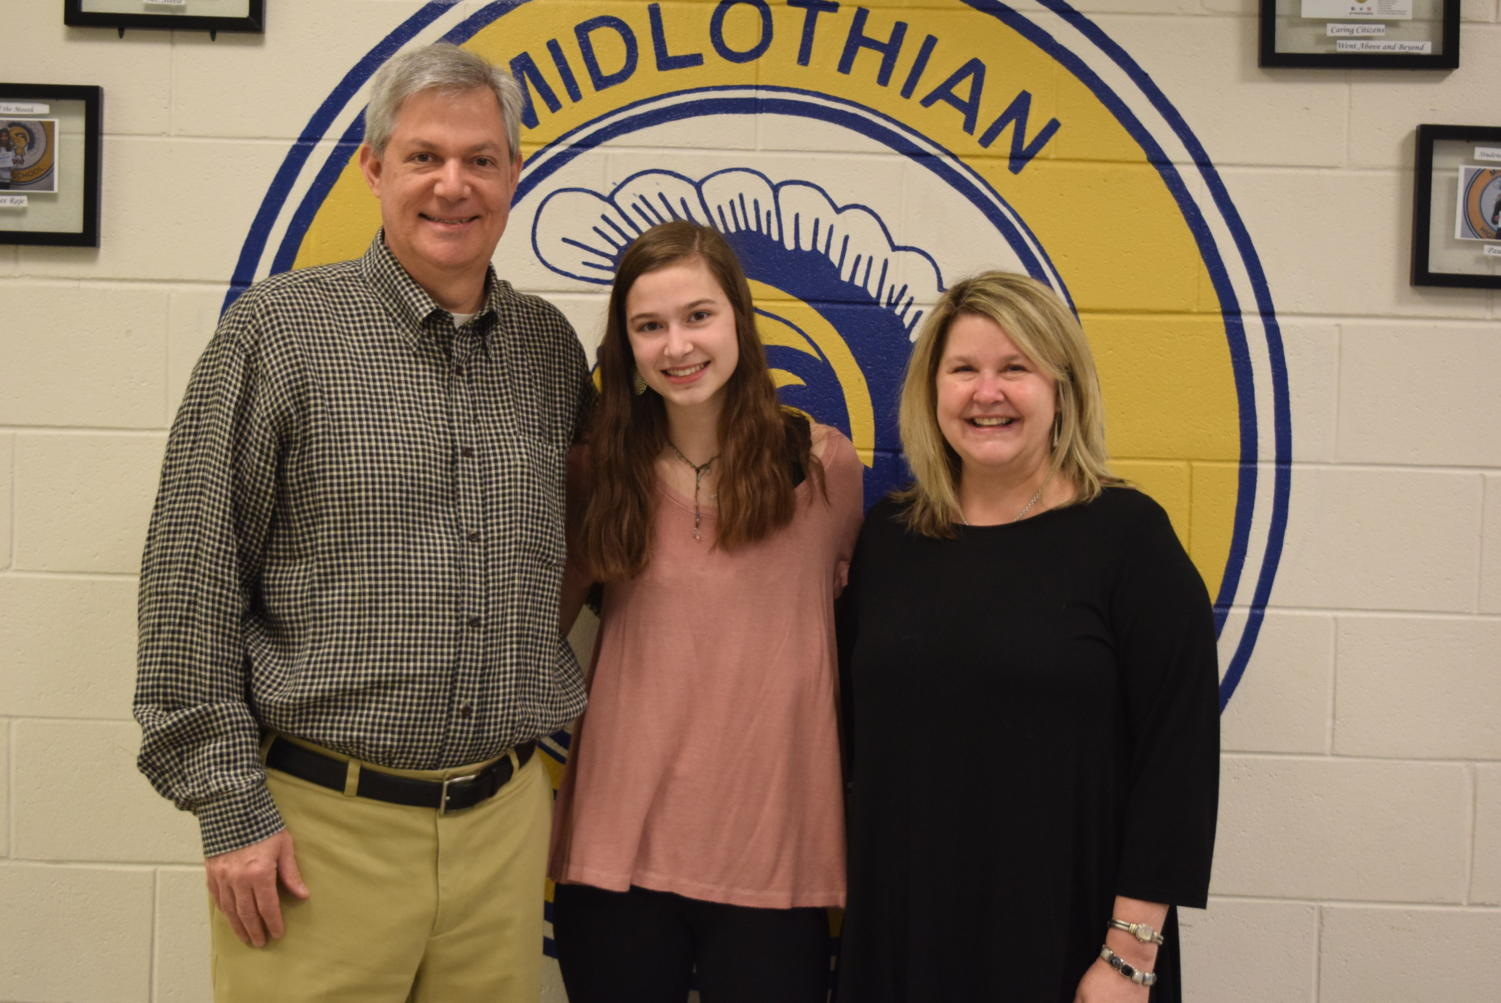 Sophomore Sarah Nugent celebrates being named 2019 Midlo Student of the Year (grades 9 and 10).